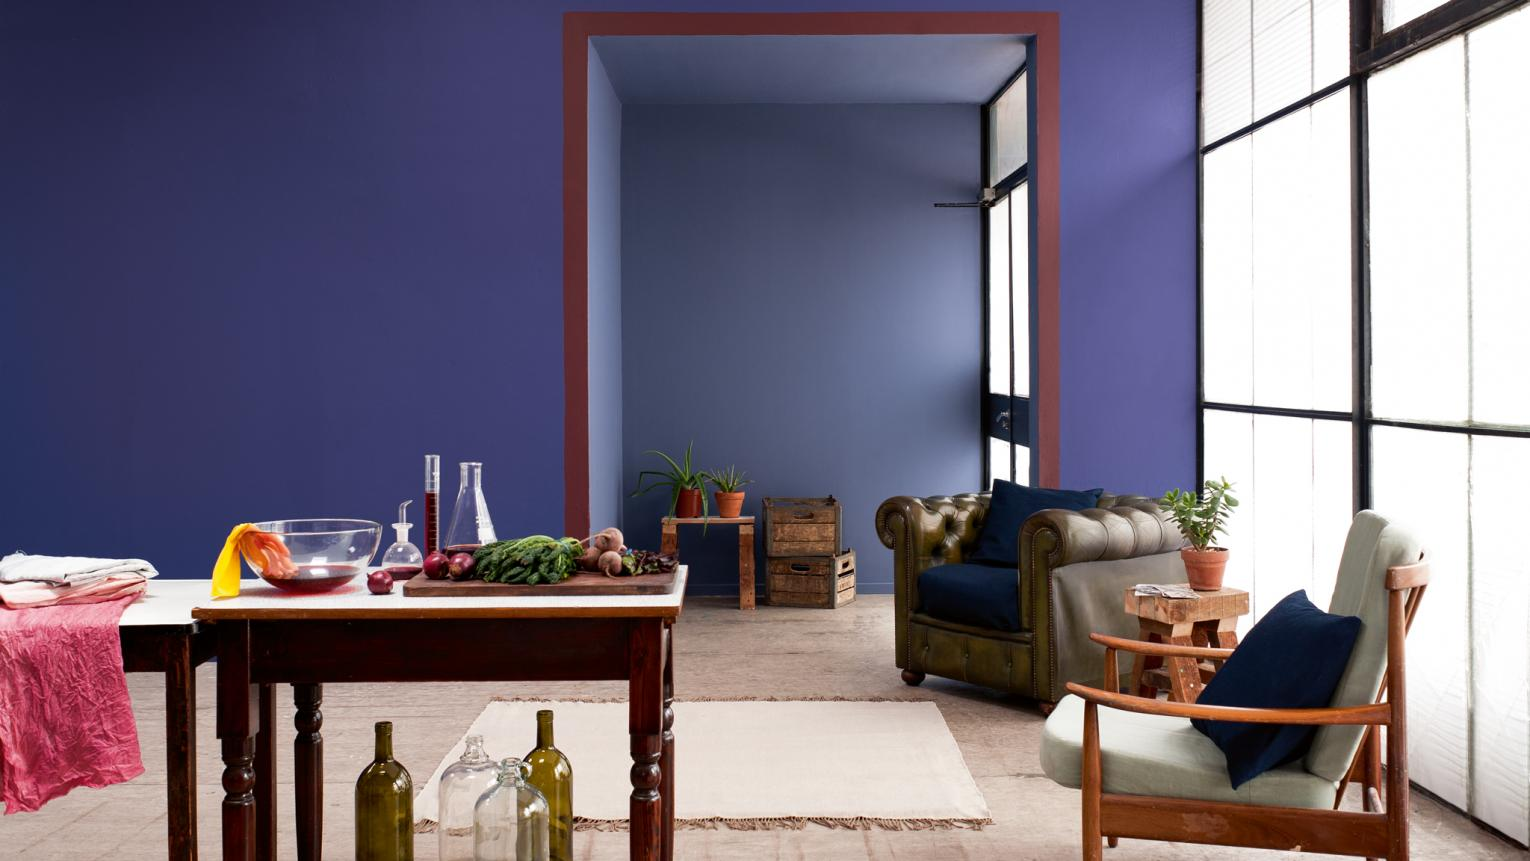 Go indigo blue for calm sophistication + colours and products